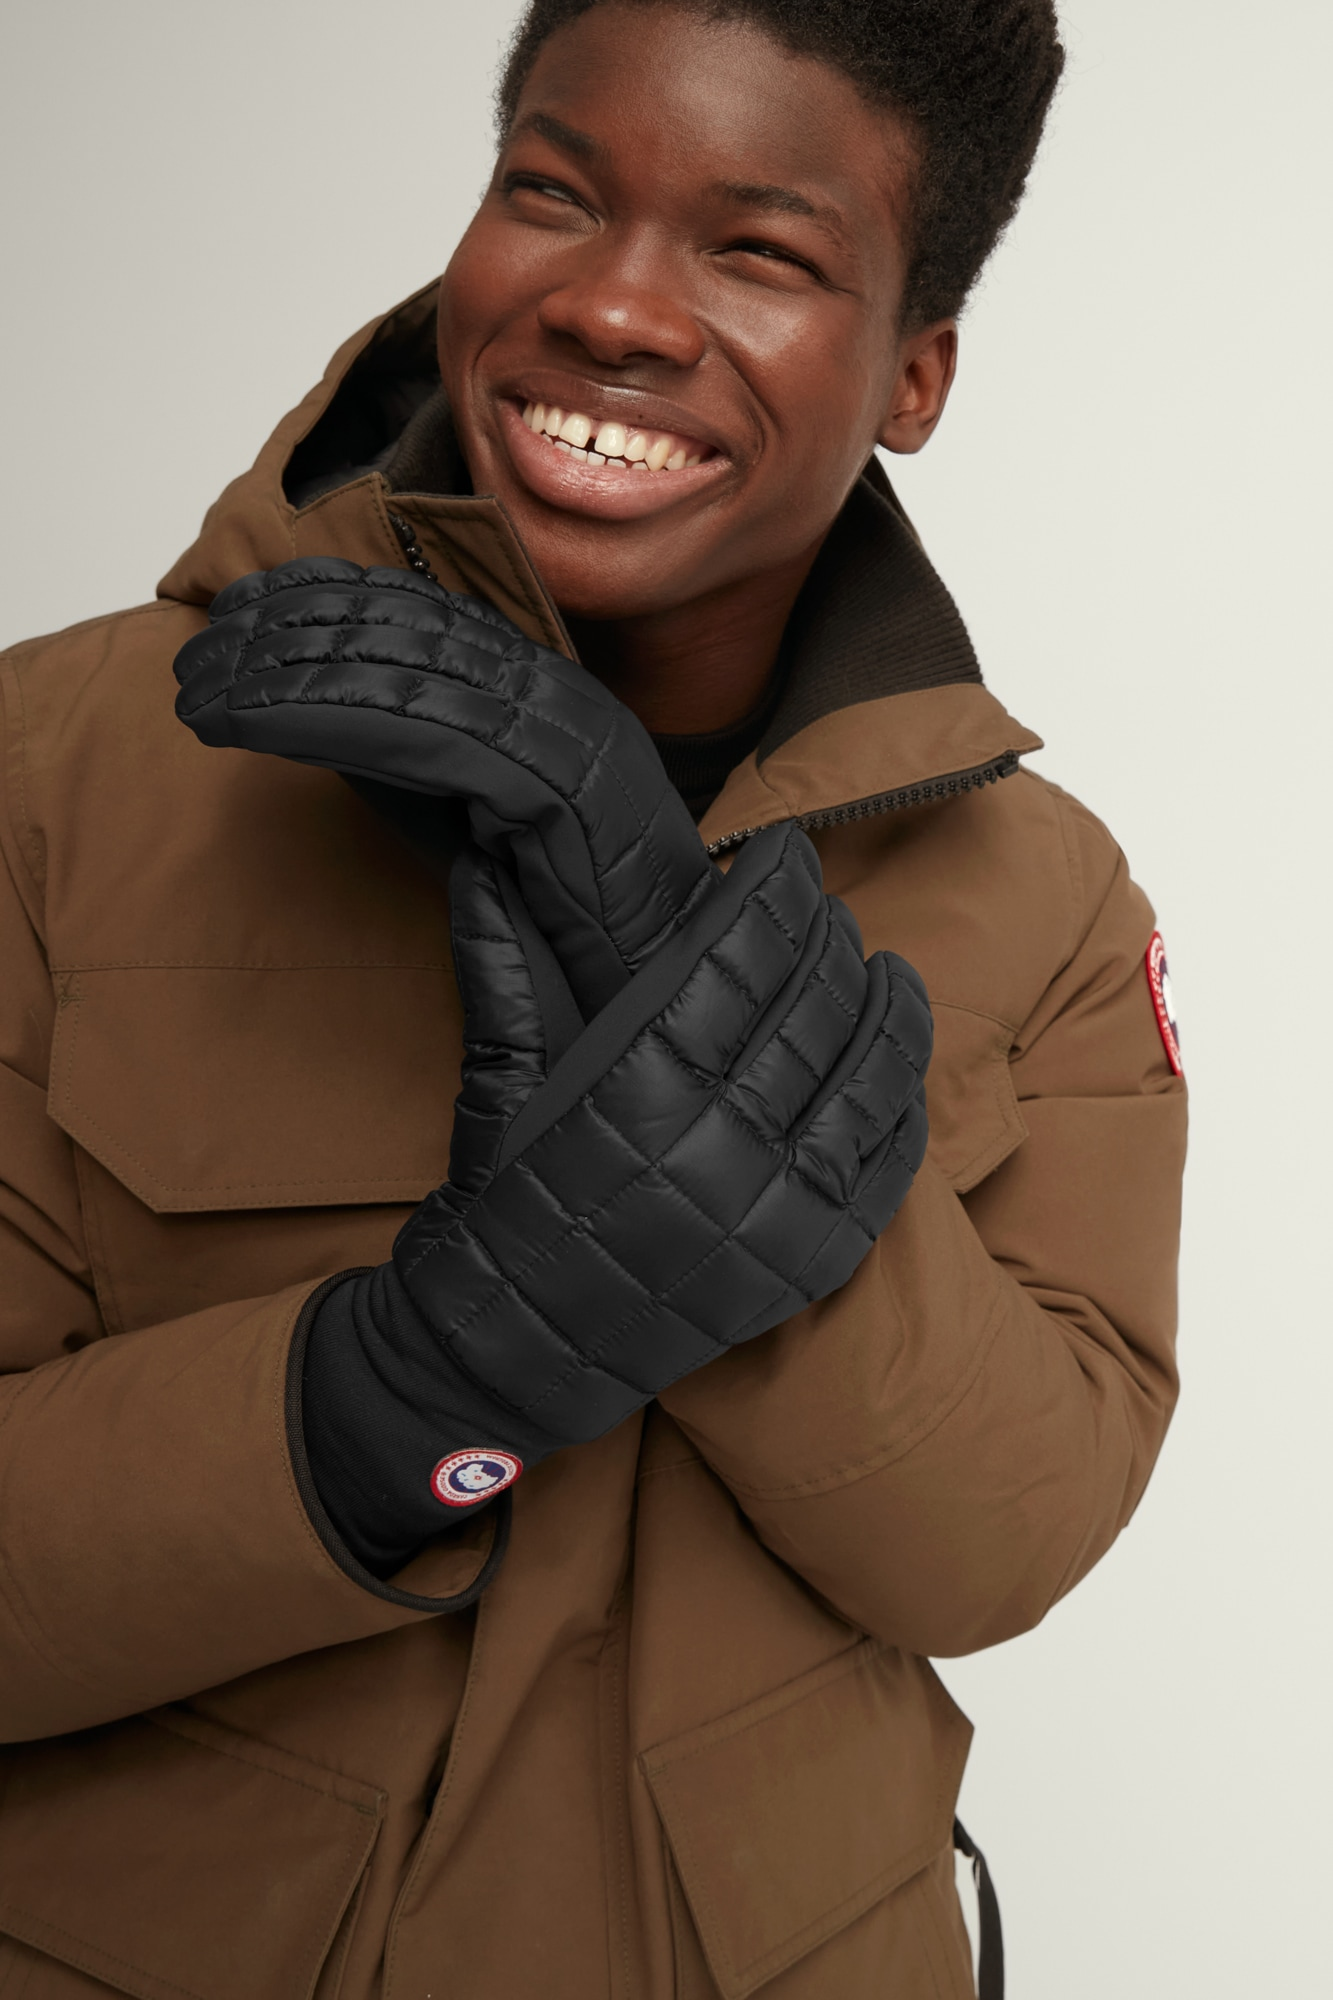 Northern Glove Liners